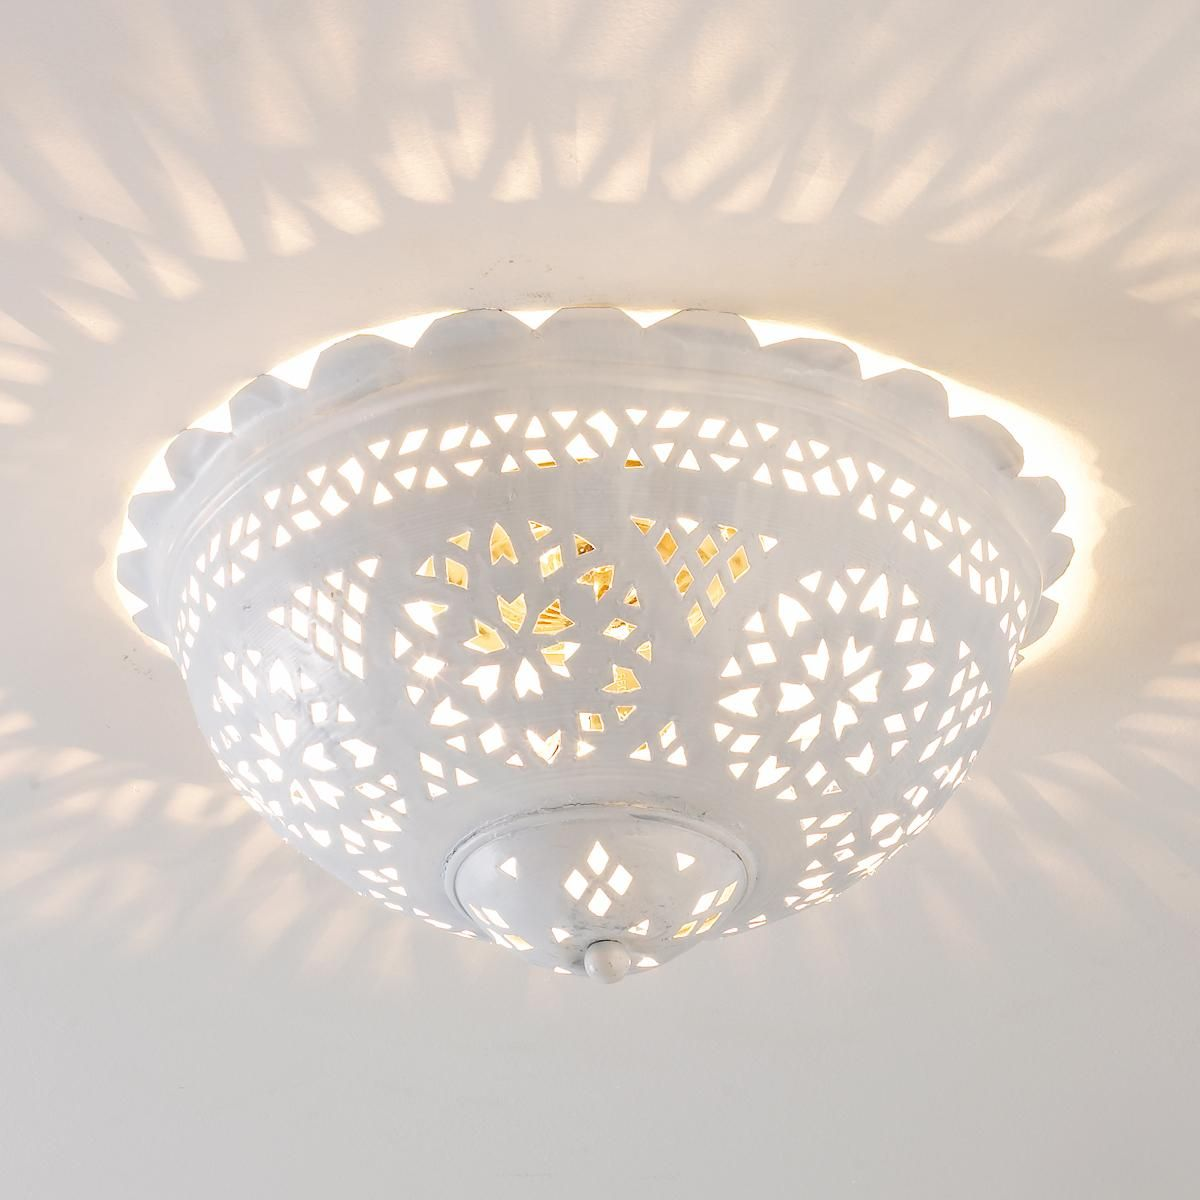 Lacey scalloped and punched metal semiflush ceiling light in white moroccan scalloped and punched metal semiflush ceiling light shades of light i wounder if this cant be decoupaged or similer to create this effect arubaitofo Choice Image